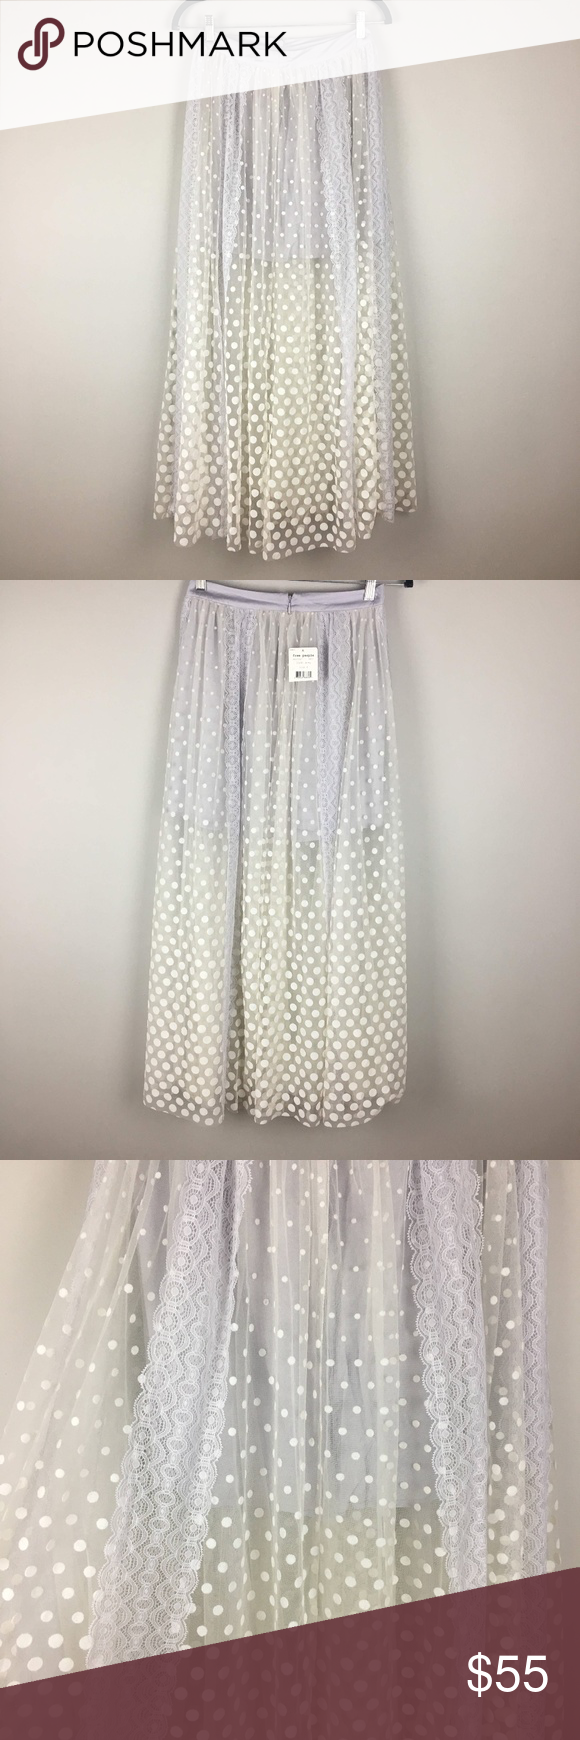 a13c9e8e8 Free People Dreaming of You Tutu Tulle Maxi Skirt NWT Free People polka dot  lace overlay gray/white skirt. Beautiful unique skirt!